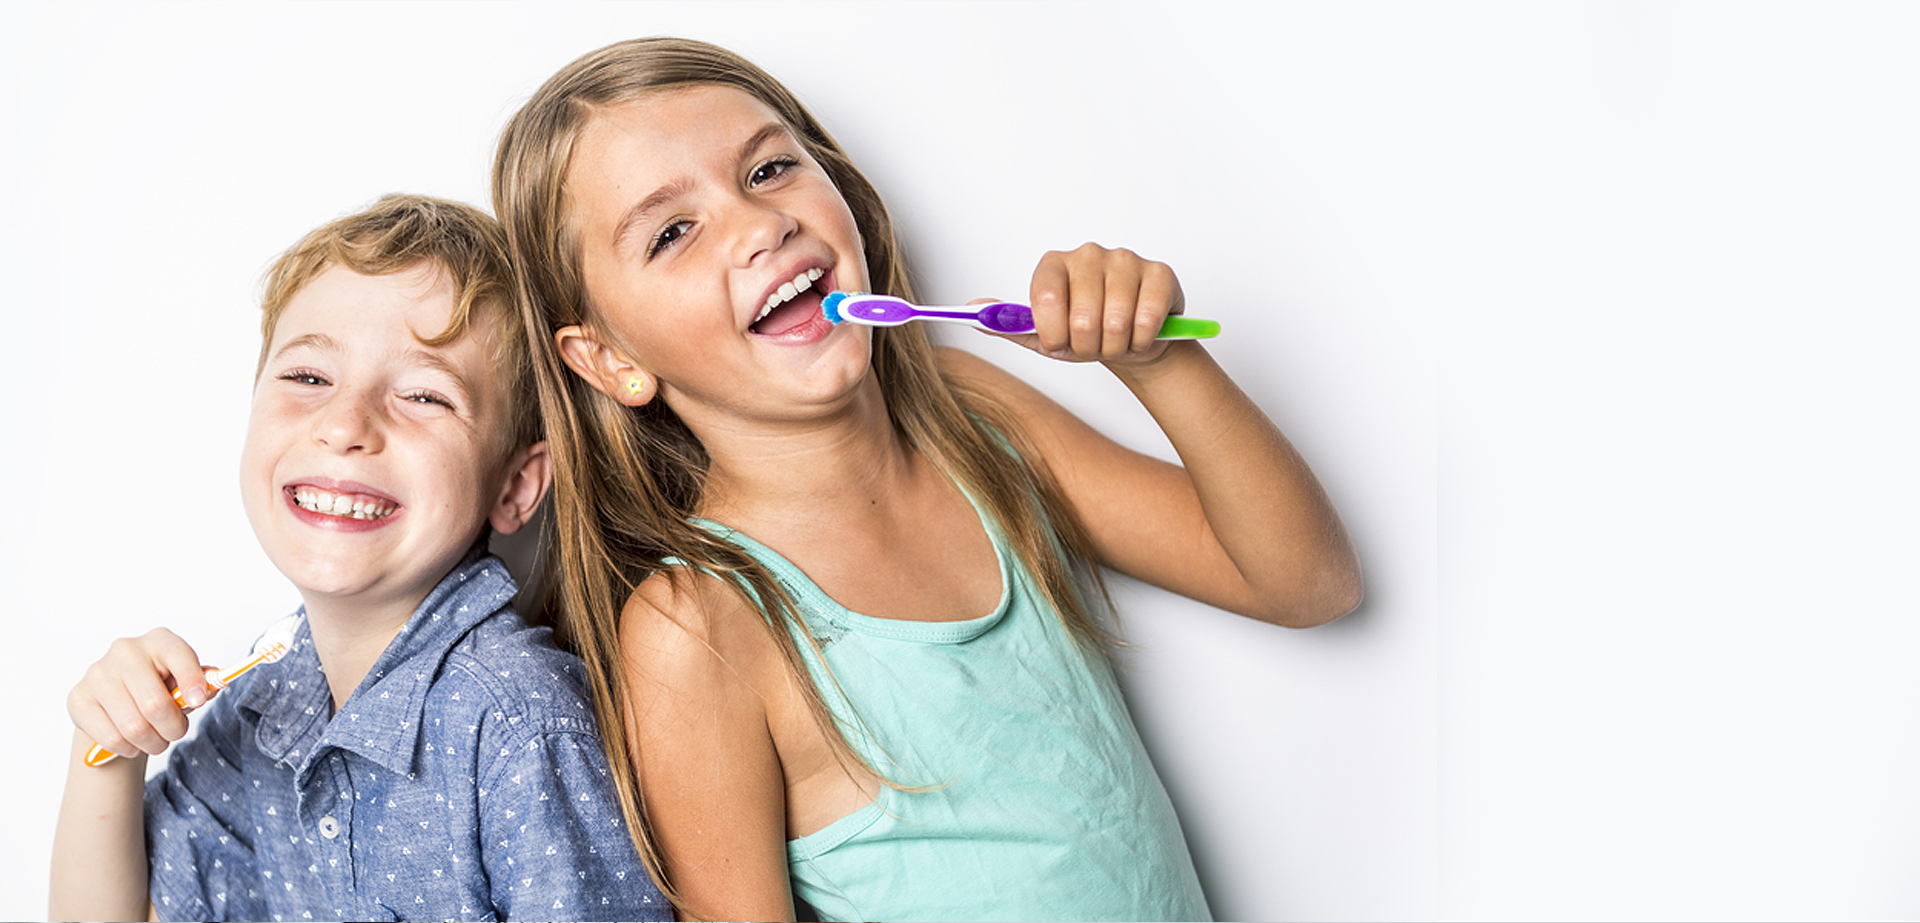 New patient special for kids 12 and under for $89 including Exam, X-ray, and Cleaning.